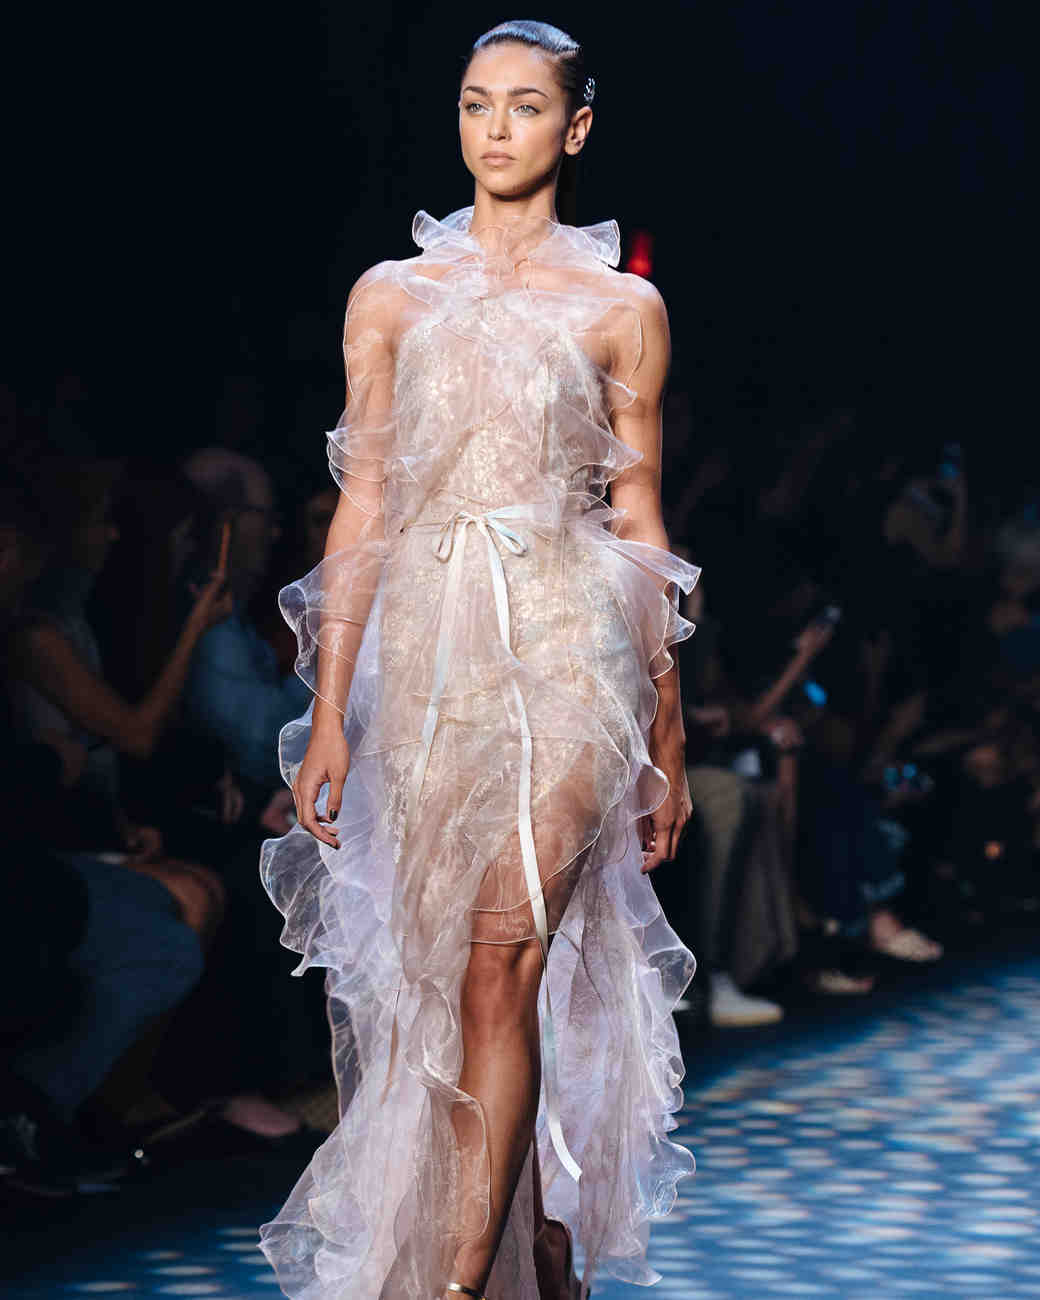 Wedding Gown Fashion Show: New York Fashion Week Looks That Could Double As Wedding